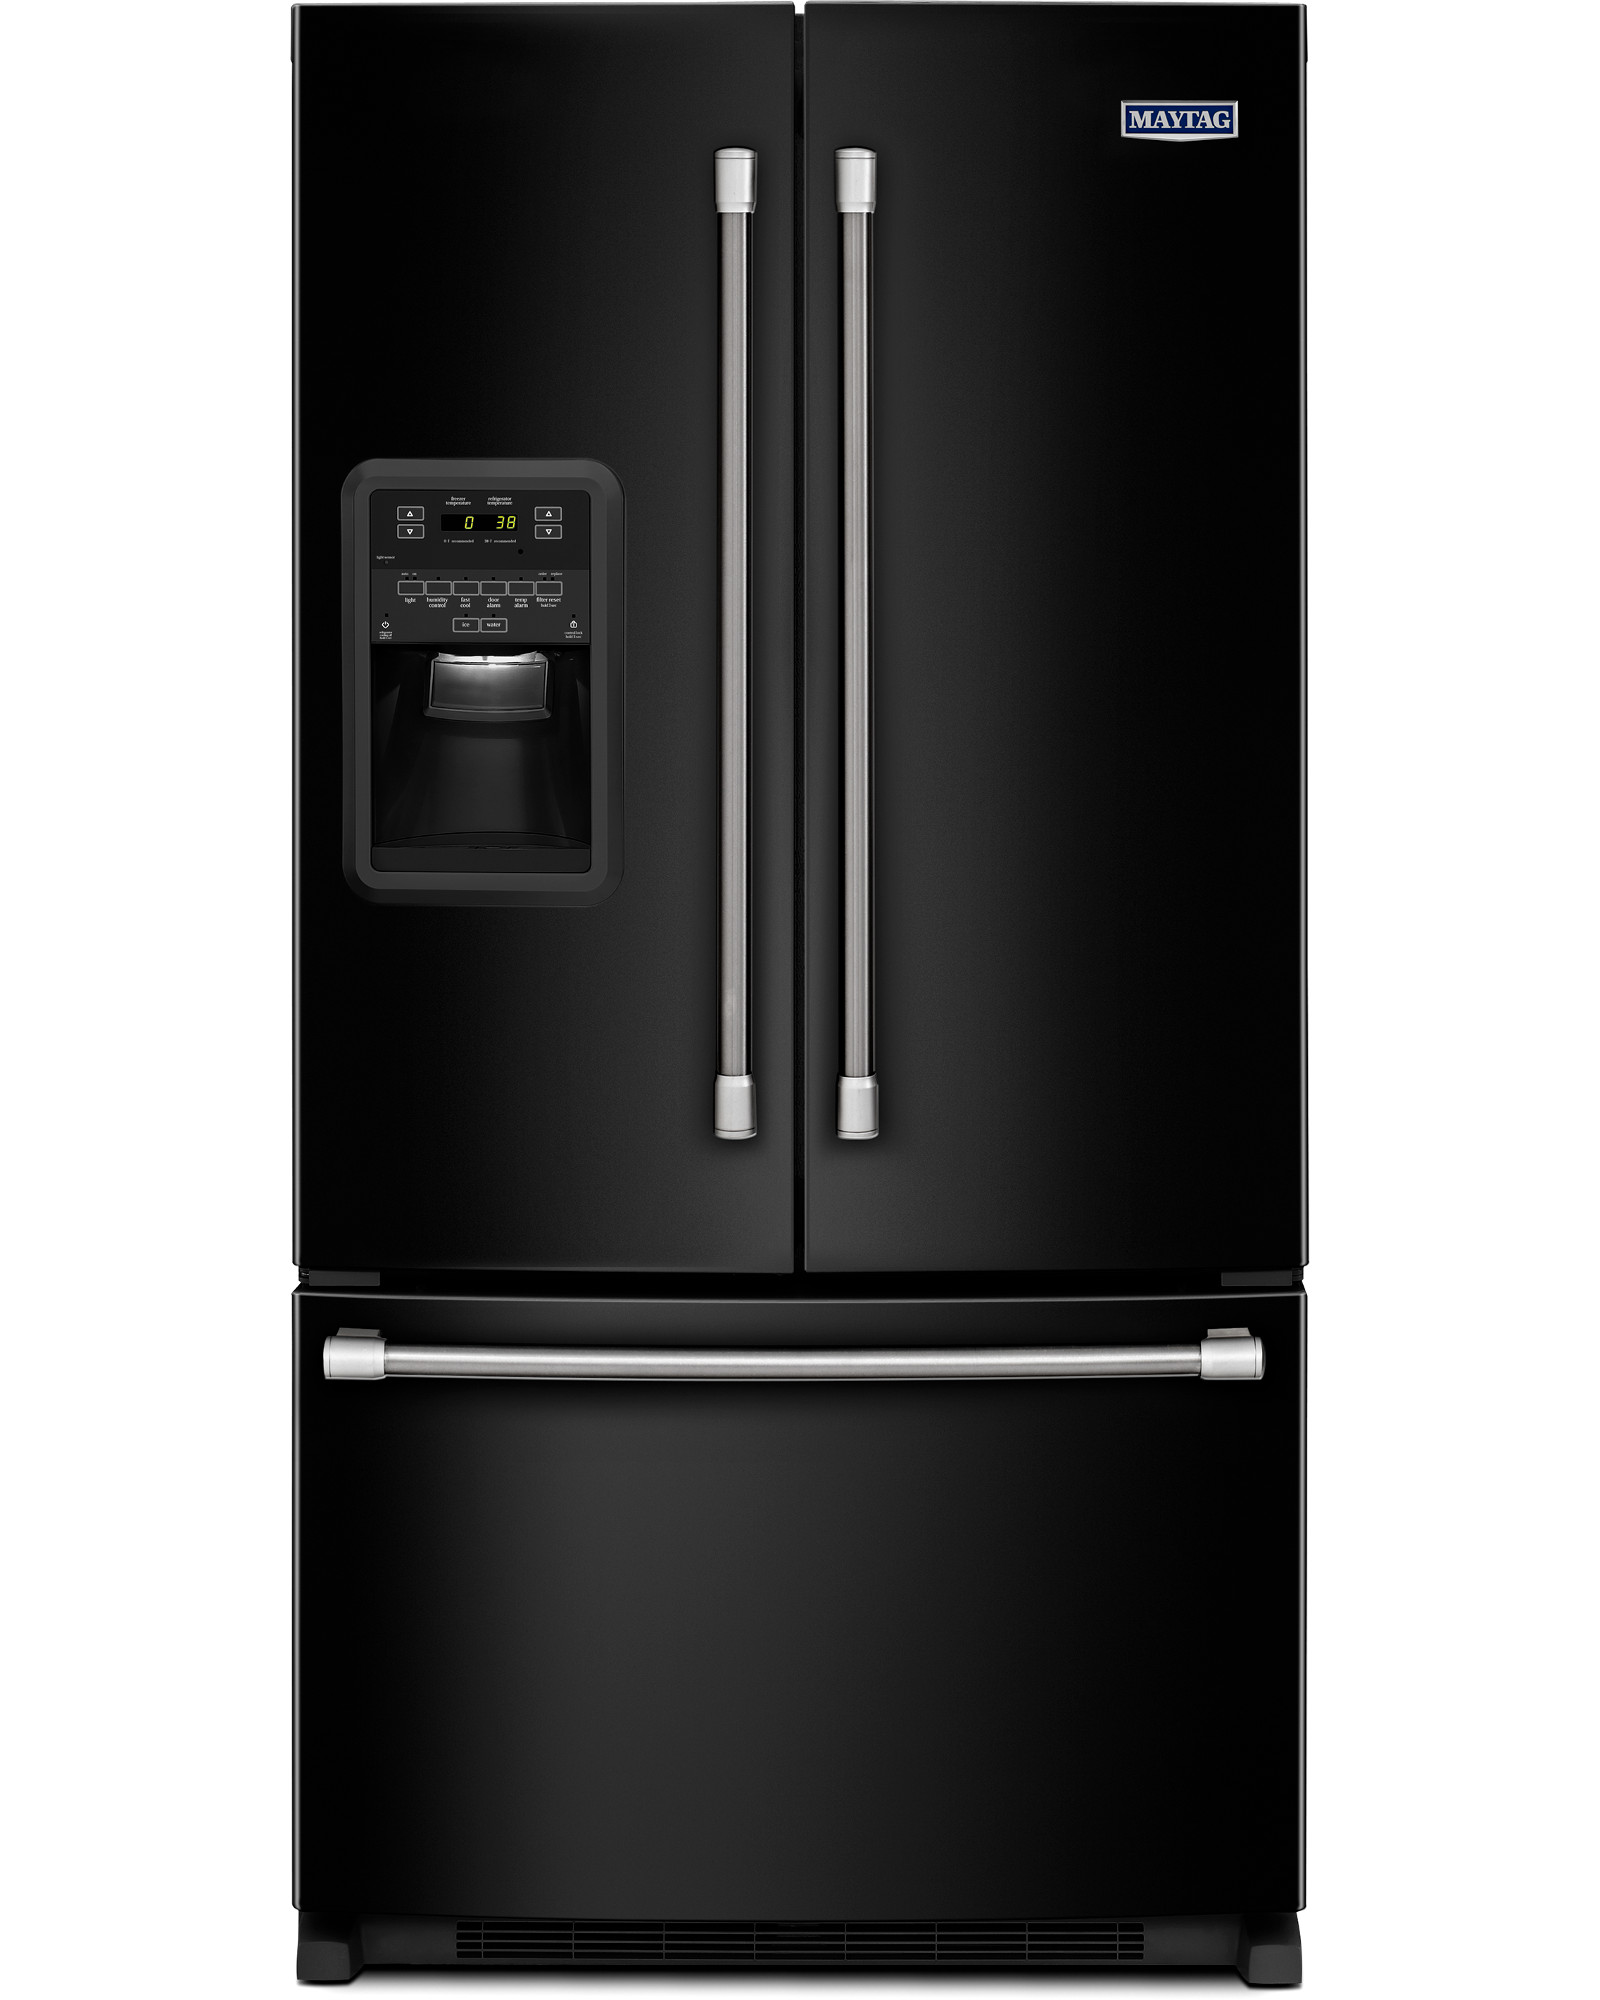 Le Meilleur Maytag Mfi2269Dre 22 Cu Ft French Door Refrigerator Ce Mois Ci